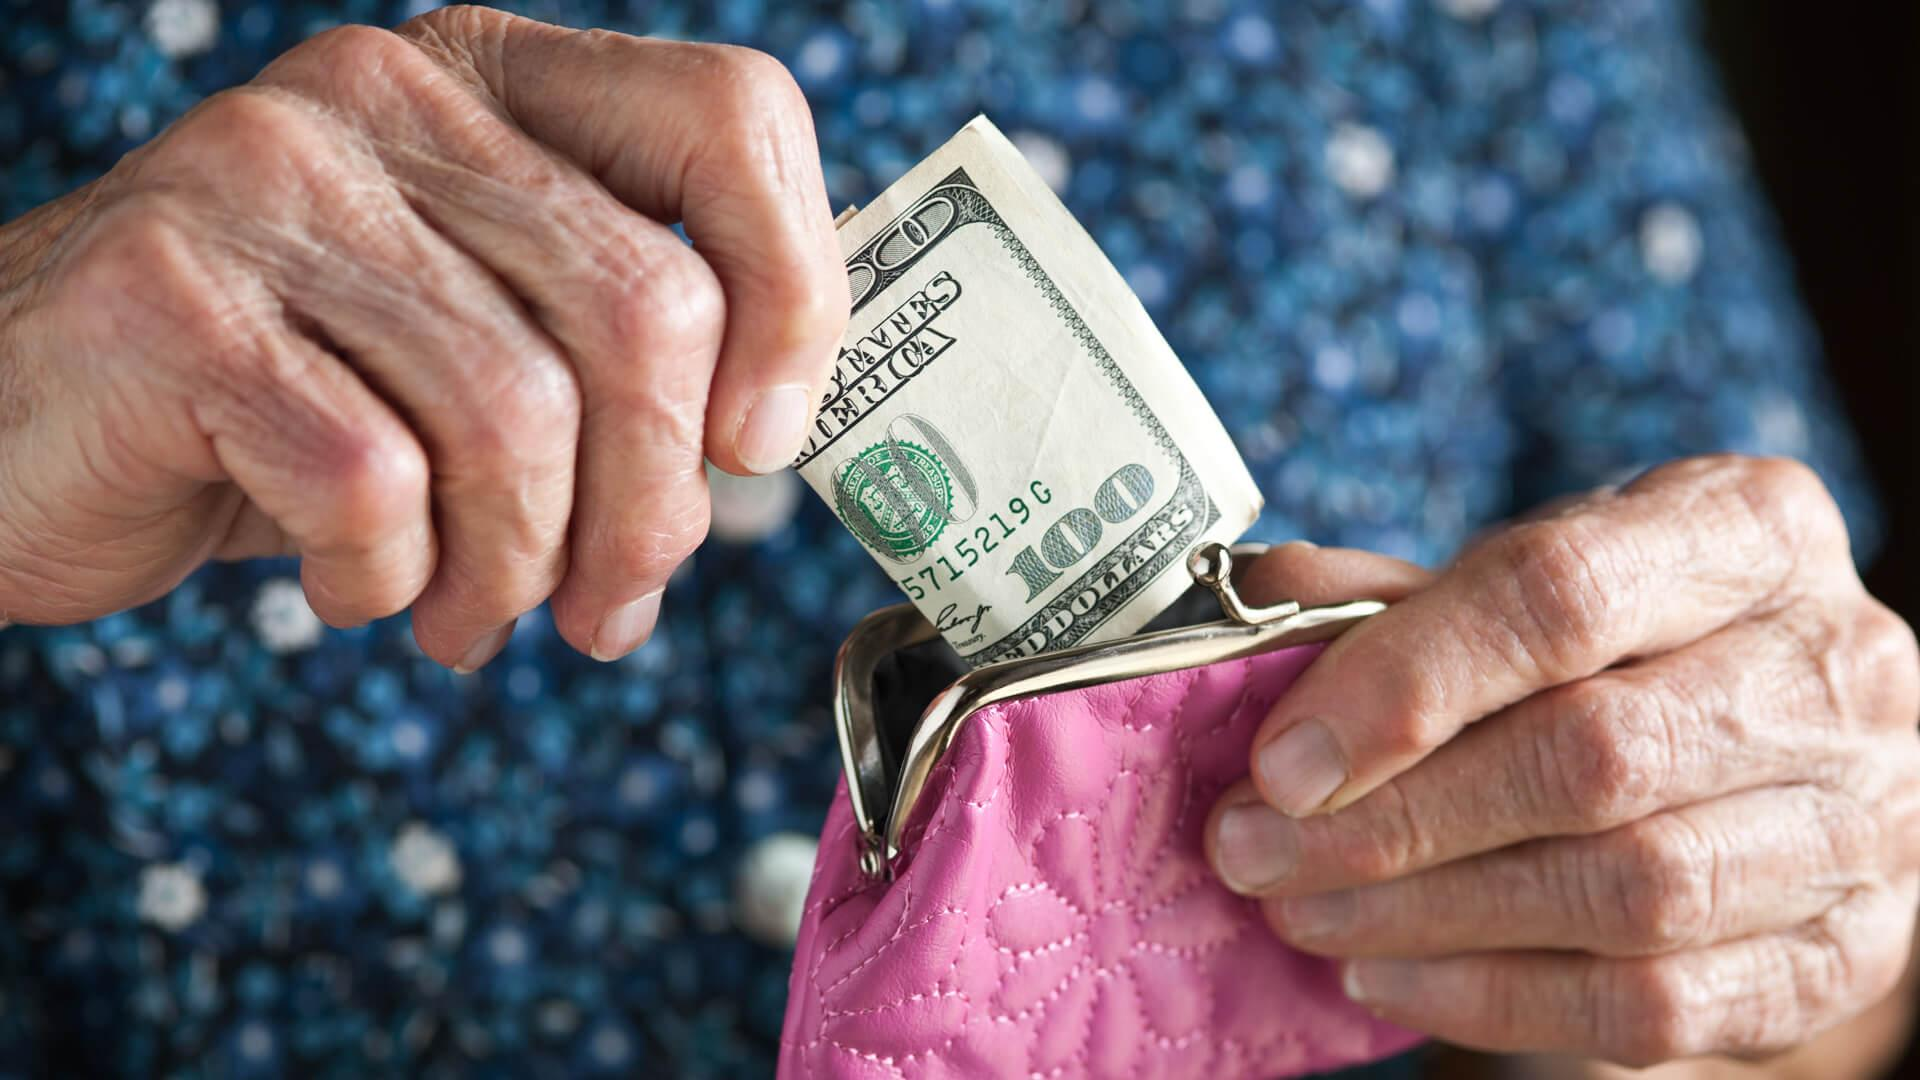 Senior Adult holding a one hundred dollar bill and a pink change purse.